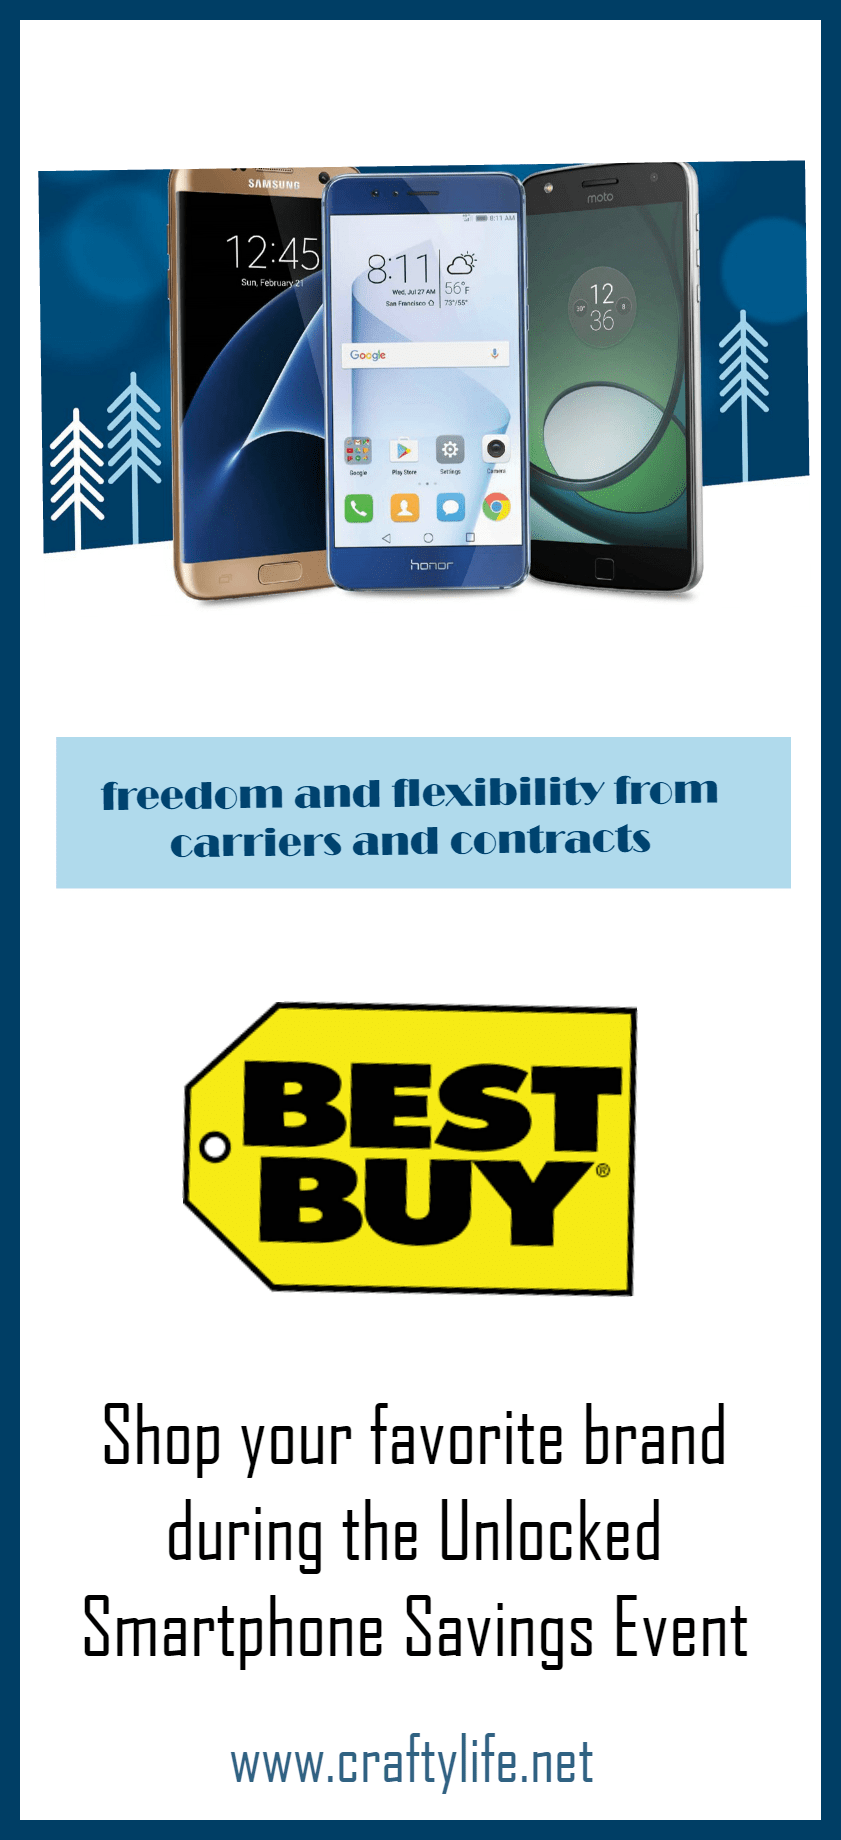 Freedom and Flexibility! Shop your favorite brand during the Unlocked Smartphone Savings Event at Best Buy.